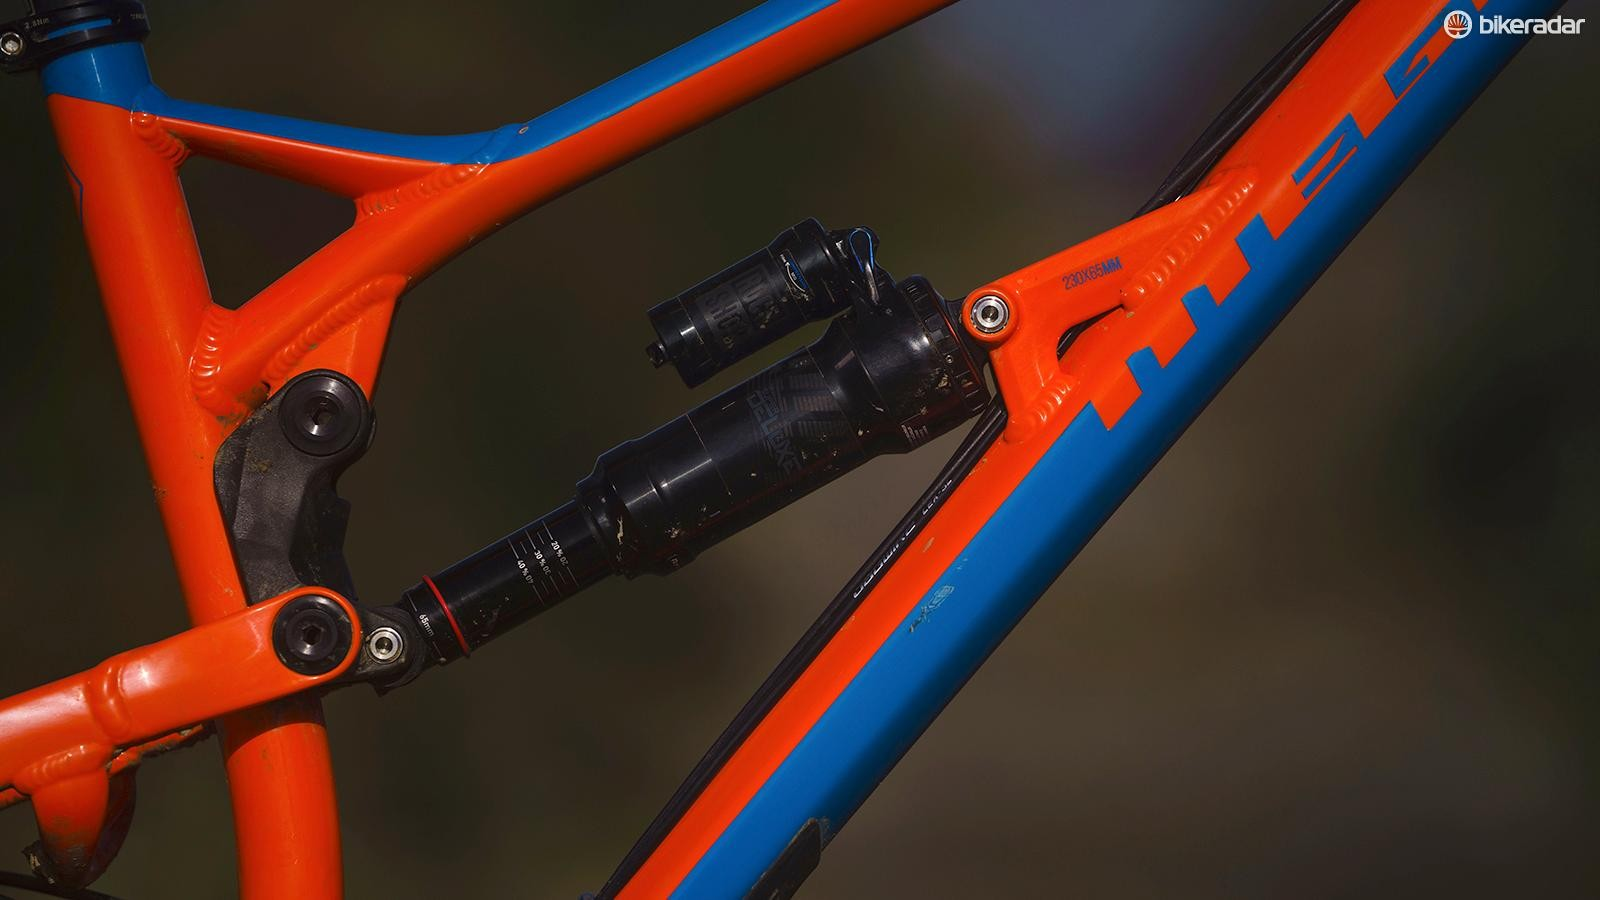 One of those all-important tweaks including redesigning the back end of the bike to work with a metric shock. In this case, the Pro gets the proven RockShox Super Deluxe RCT shock